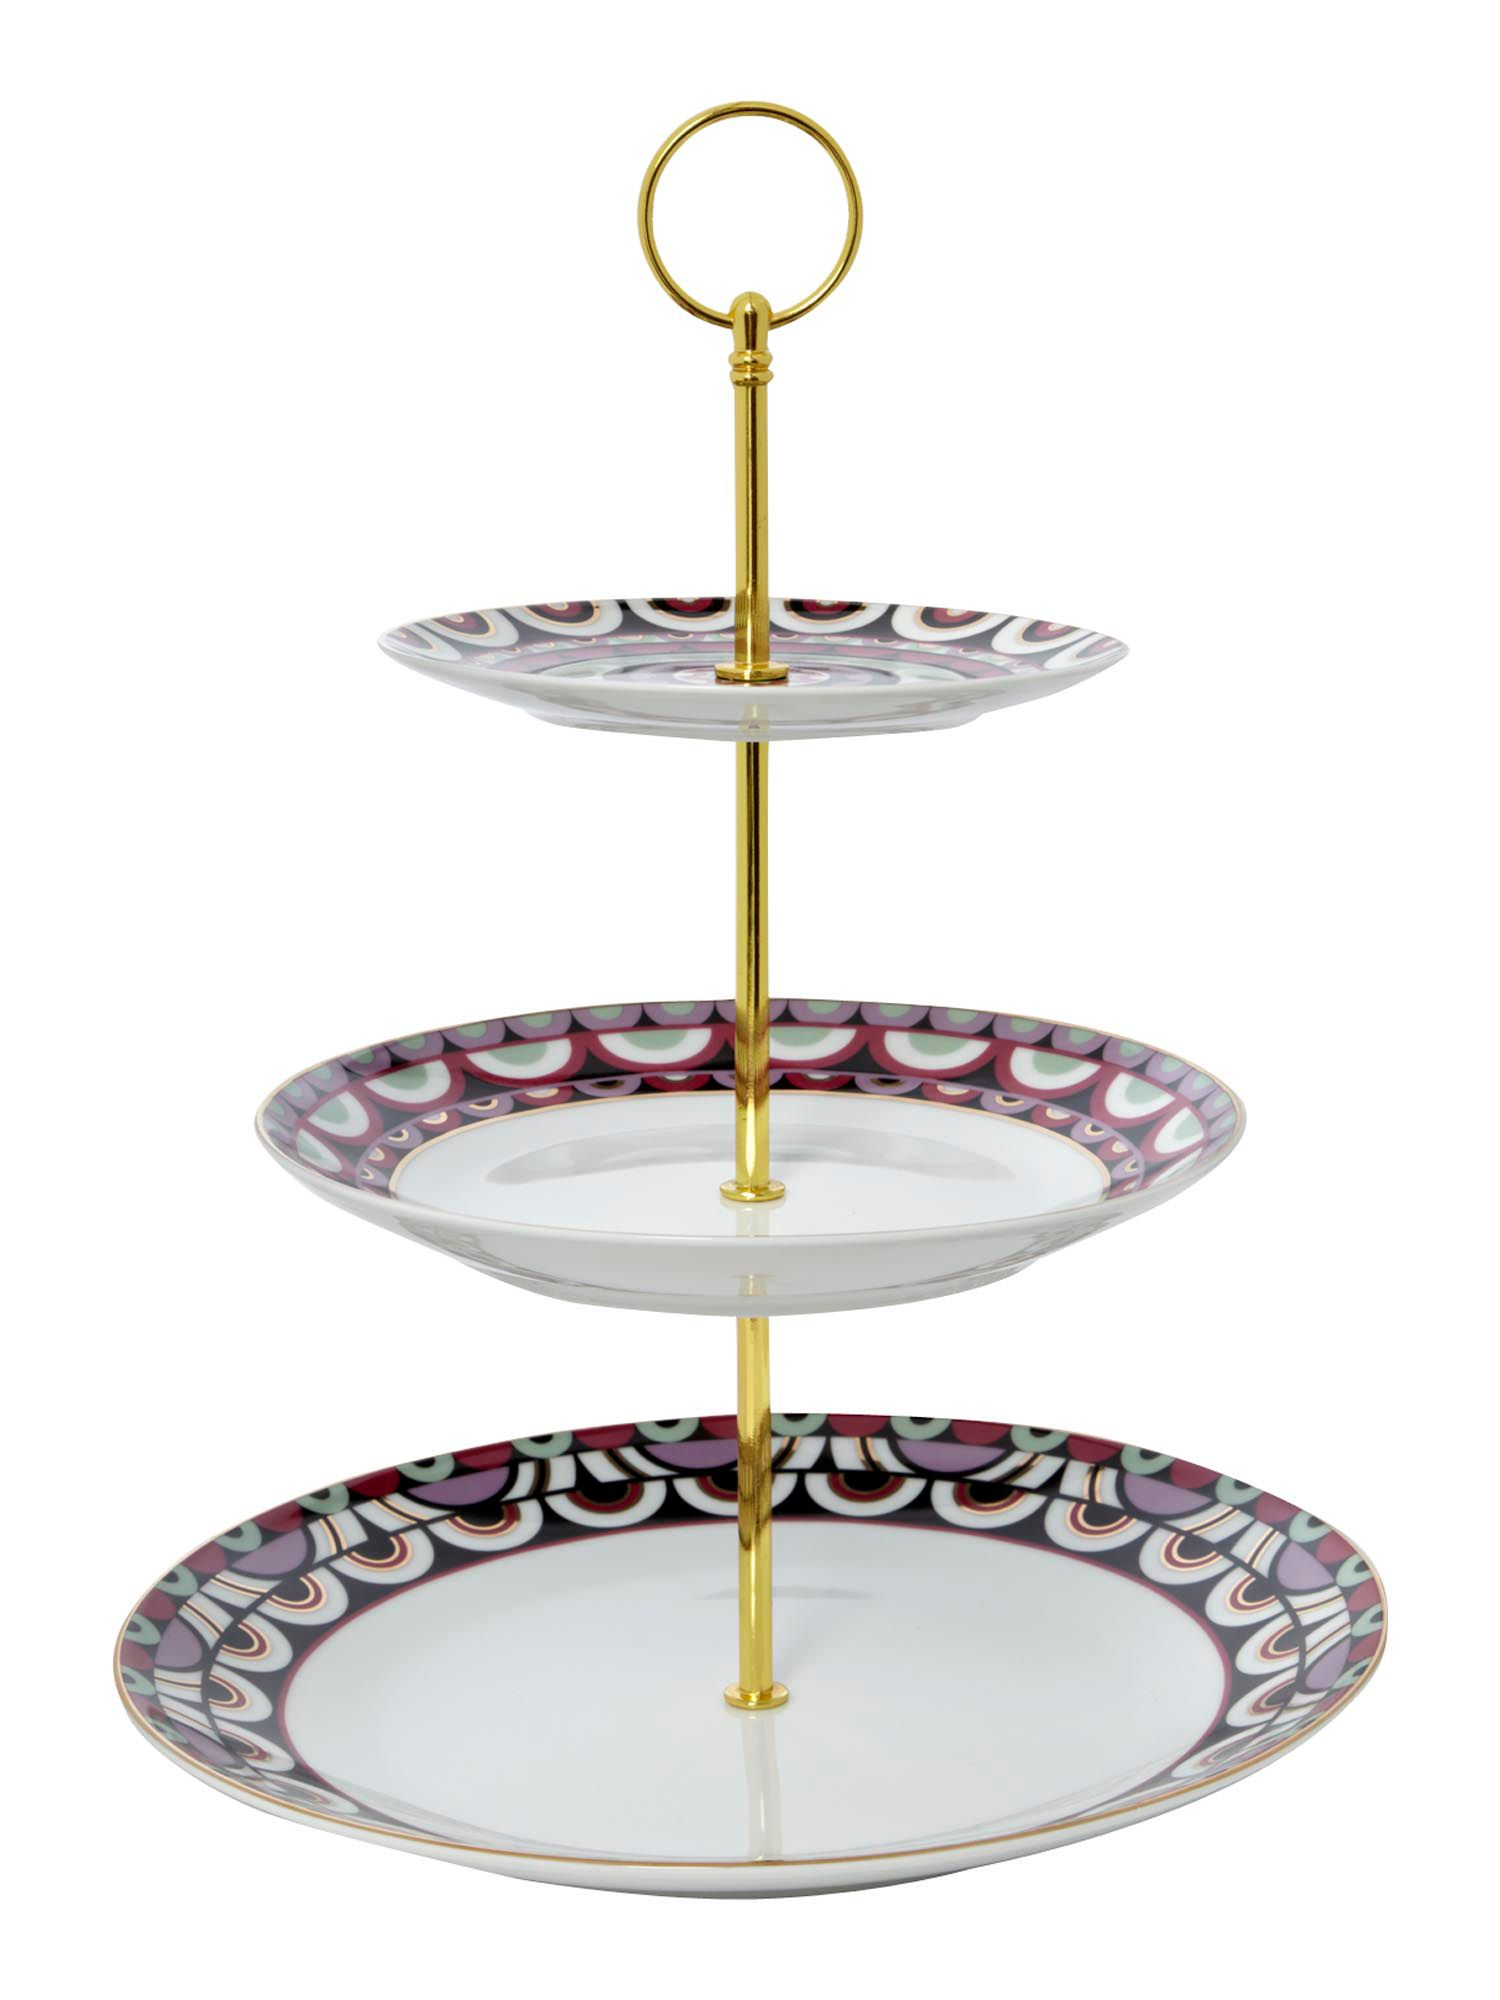 Pied a Terre Persia Jewel 3 tier cakestand